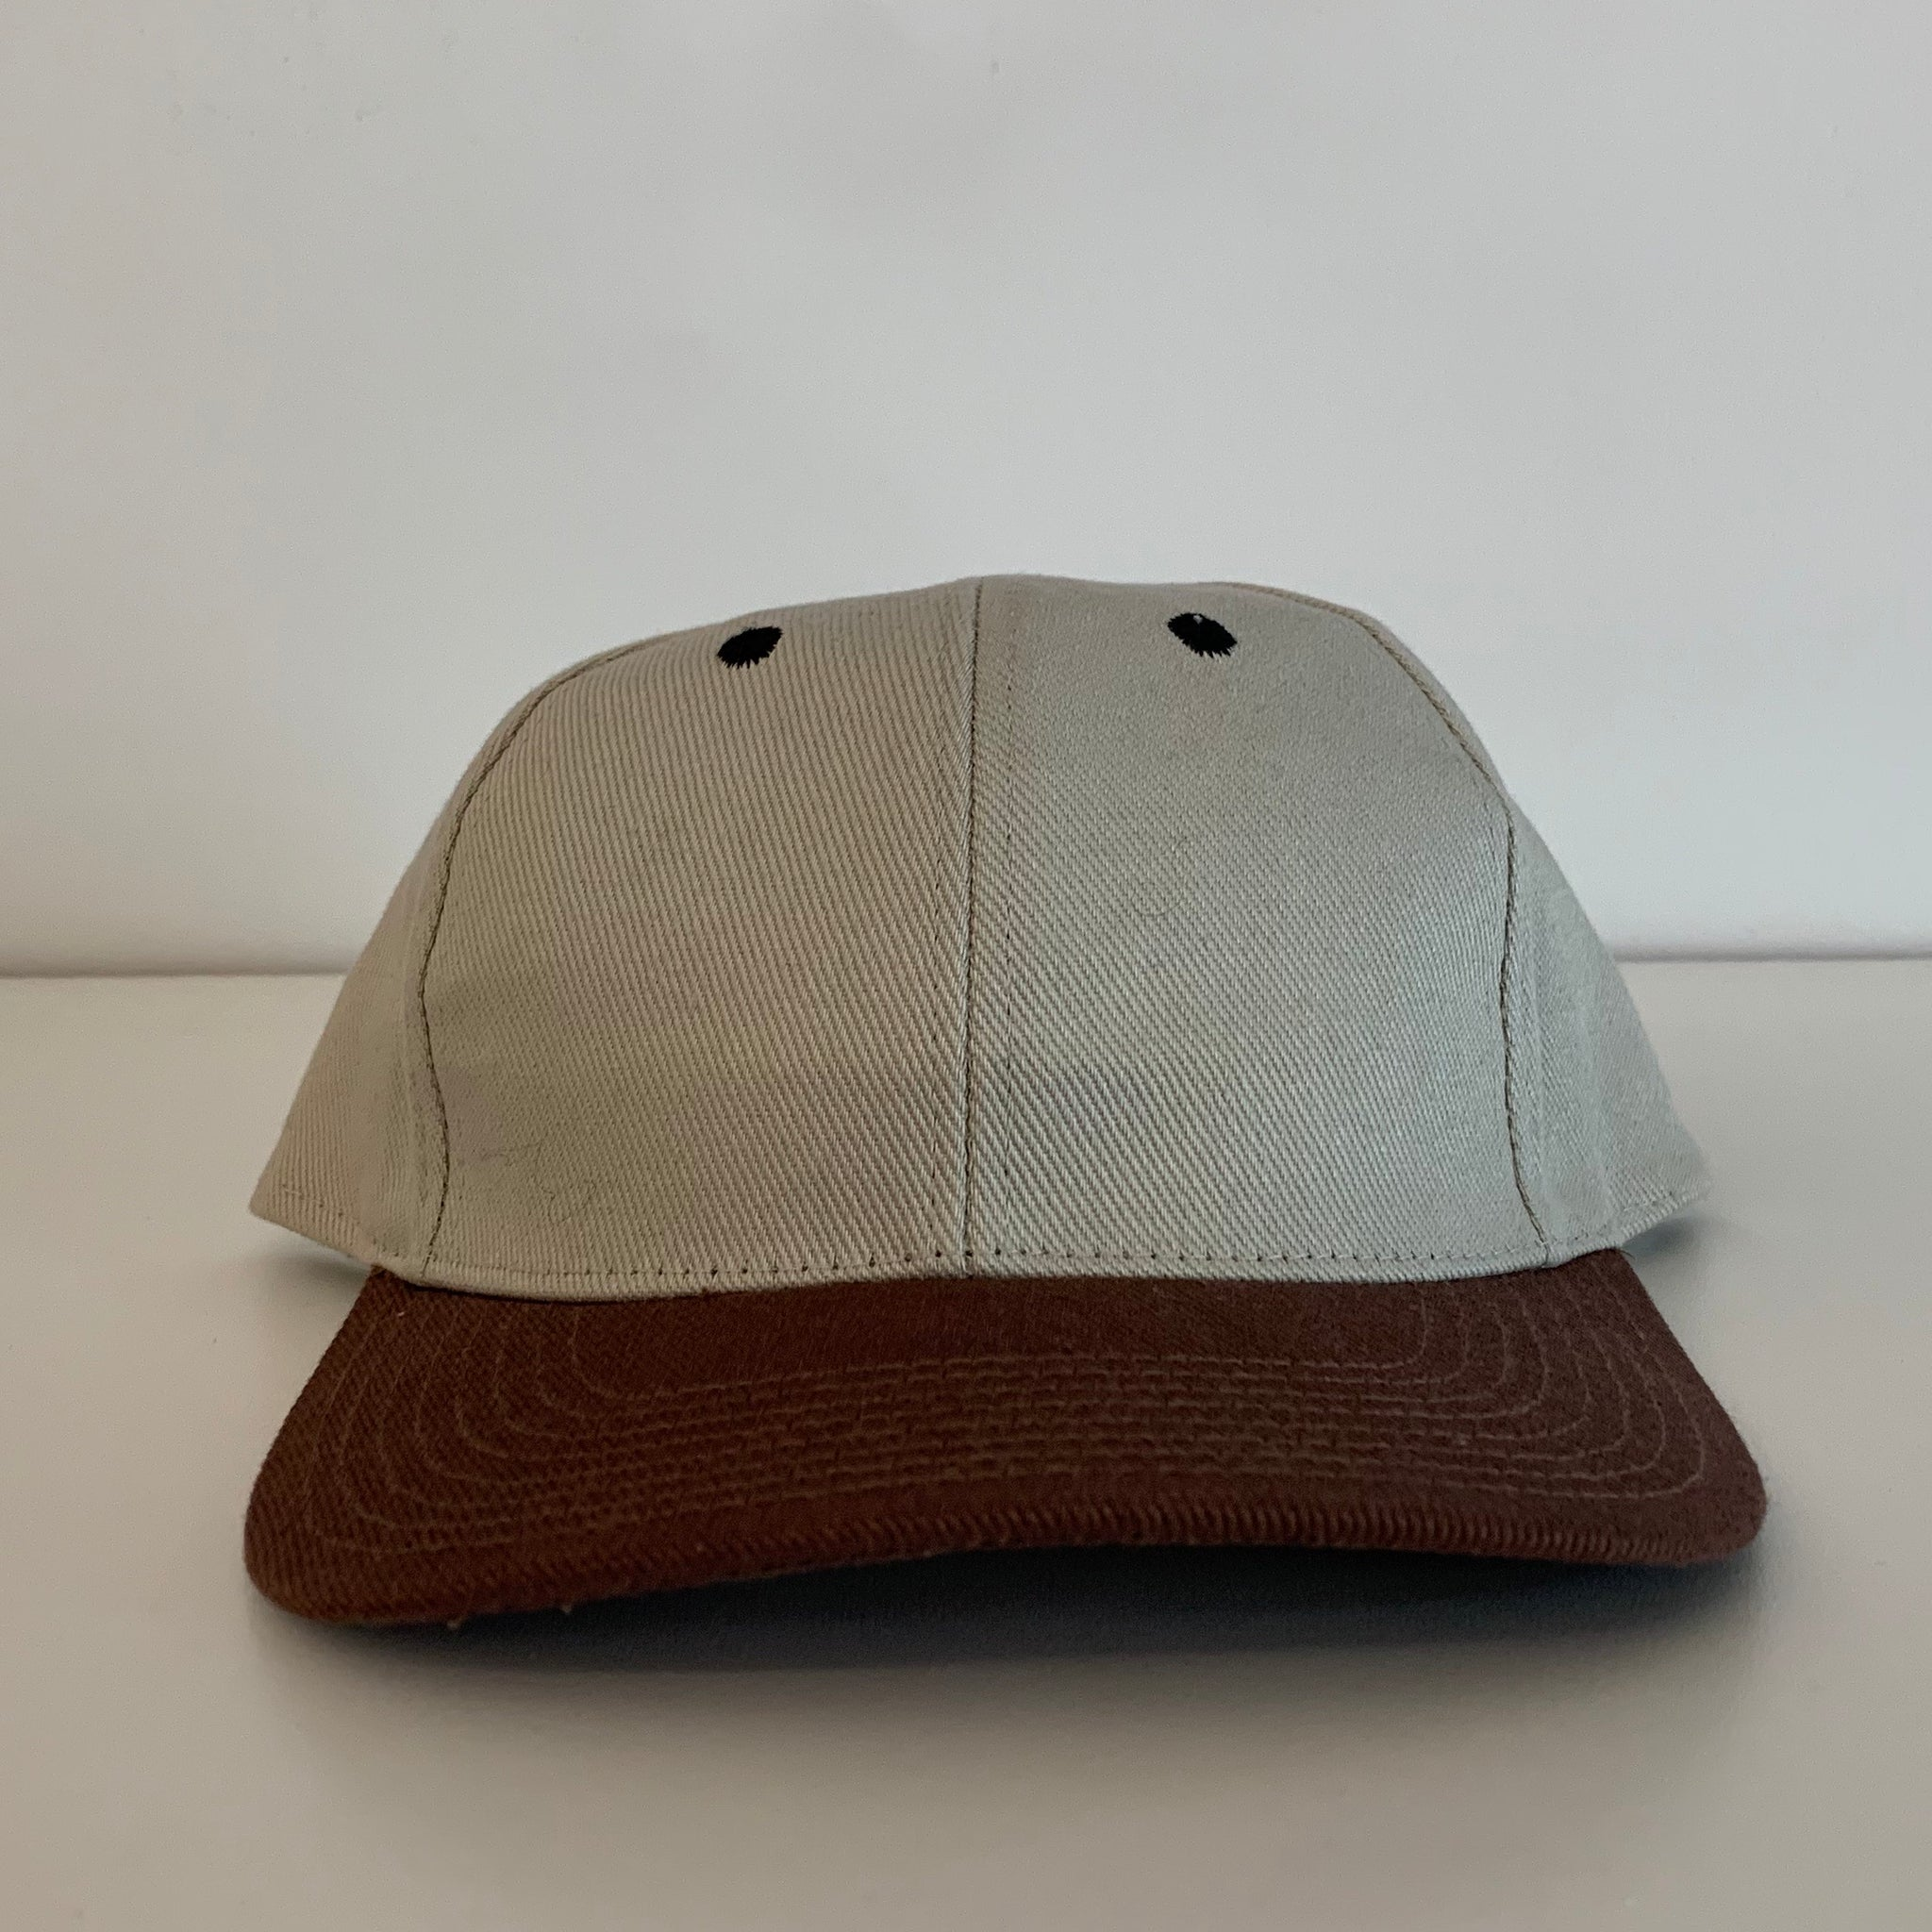 Blank Nike Golf Hat Brown/Sand